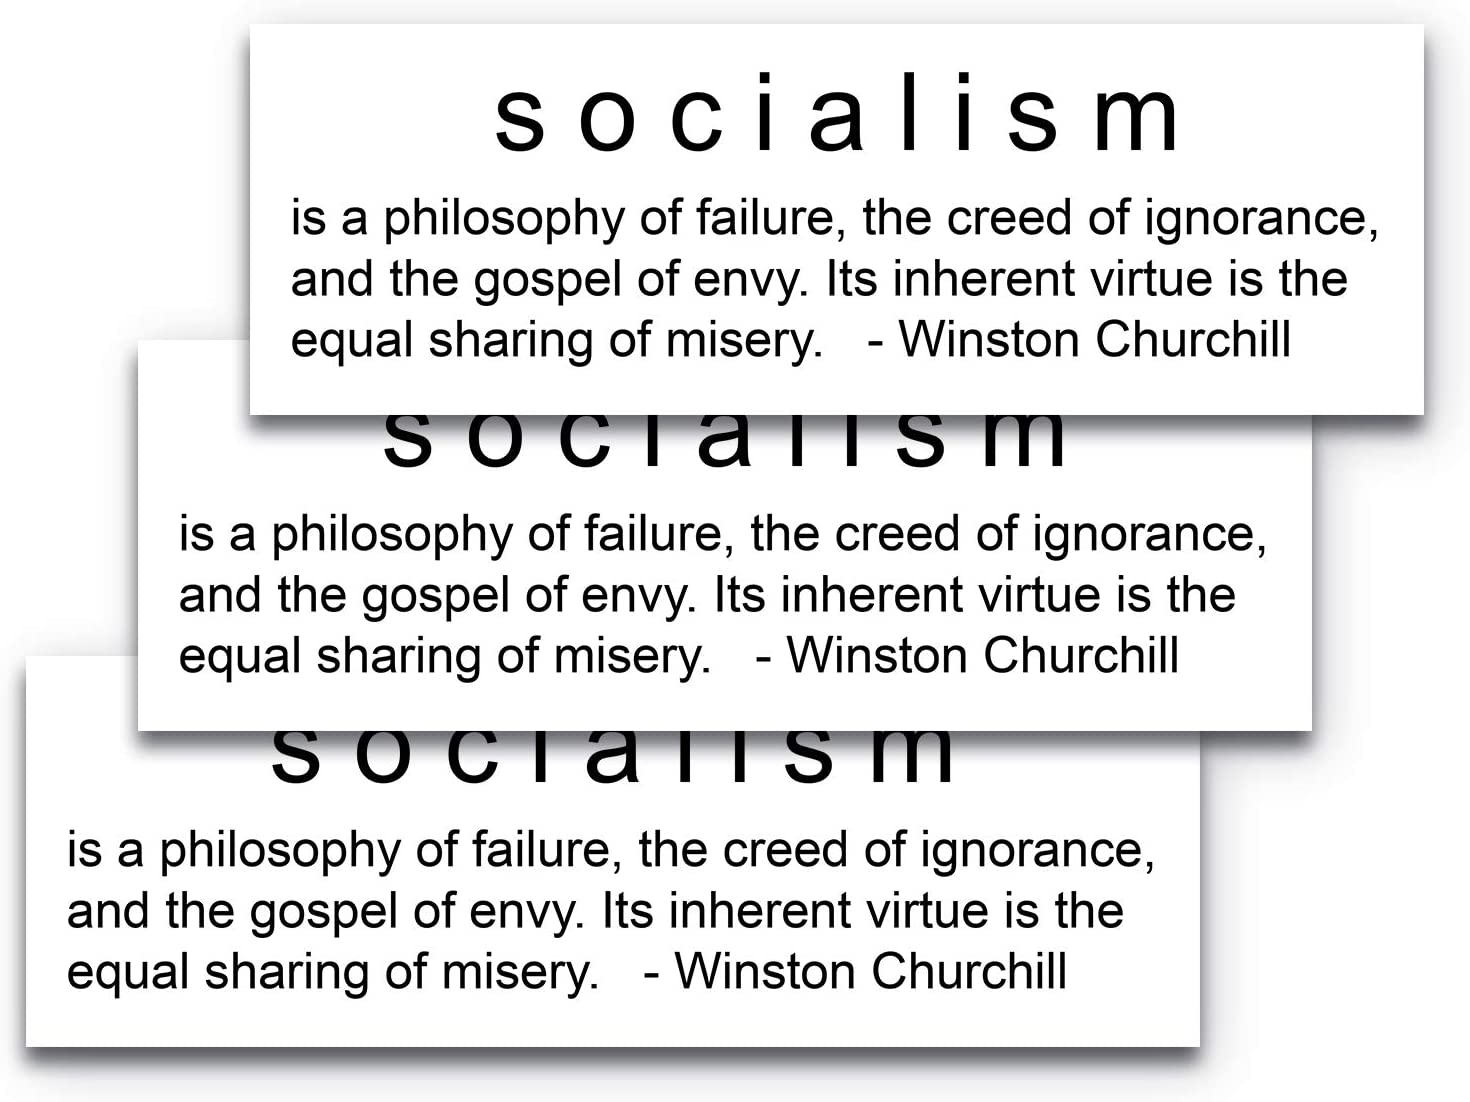 9x3 Socialism Winston Churchill Quote Sticker 3-Pack, 100% Waterproof, Durable 9x3 Winston Churchill Quote, Black Lettering on a Clear Background